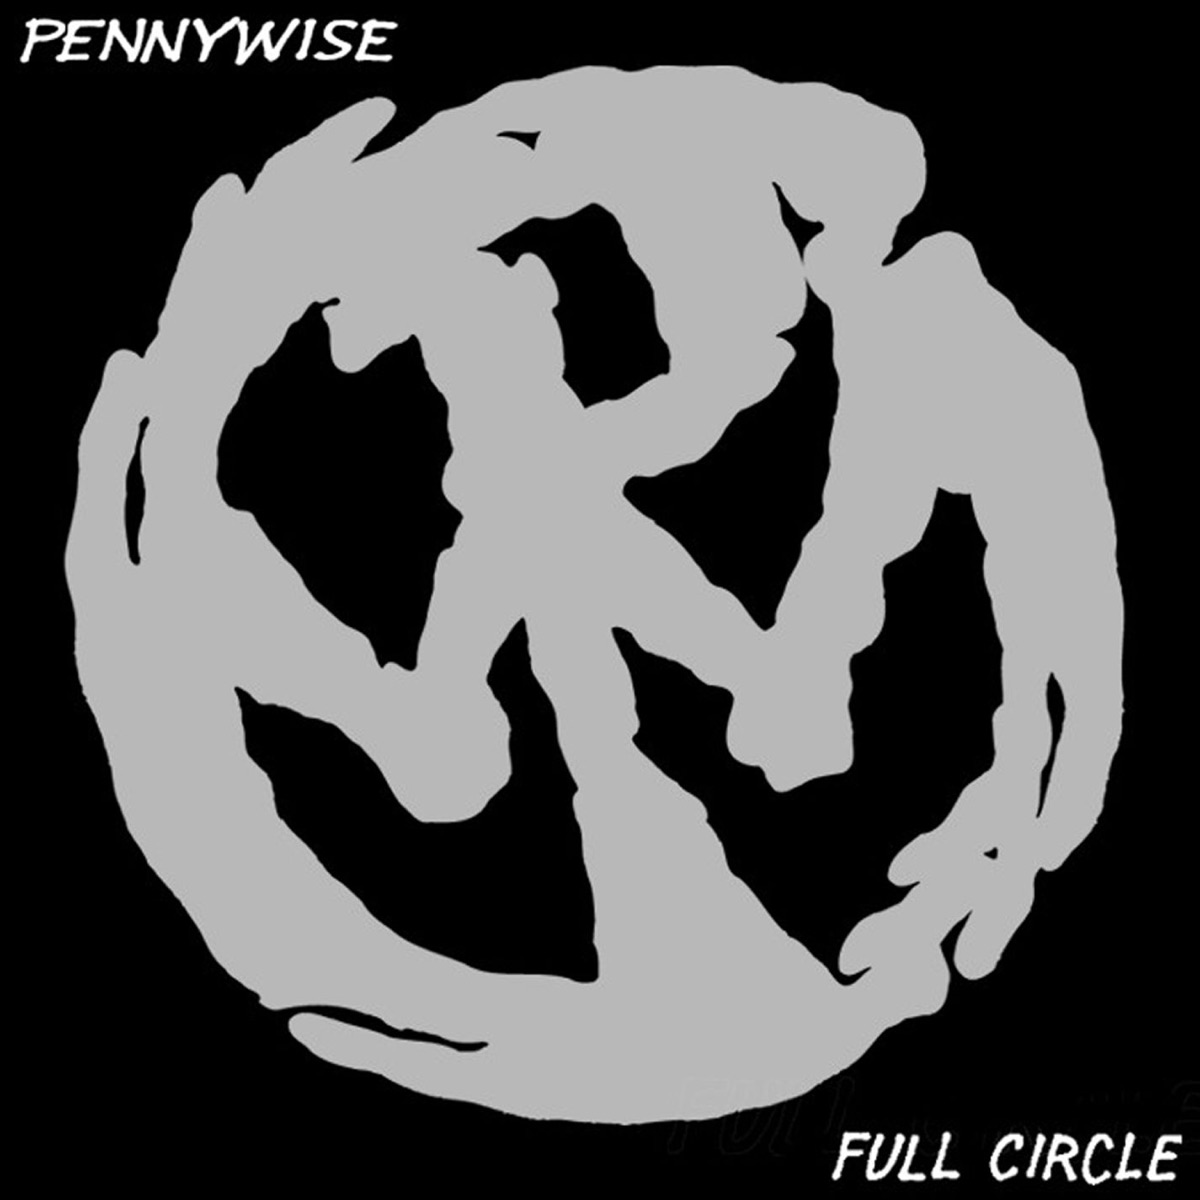 Full Circle Pennywise CD cover